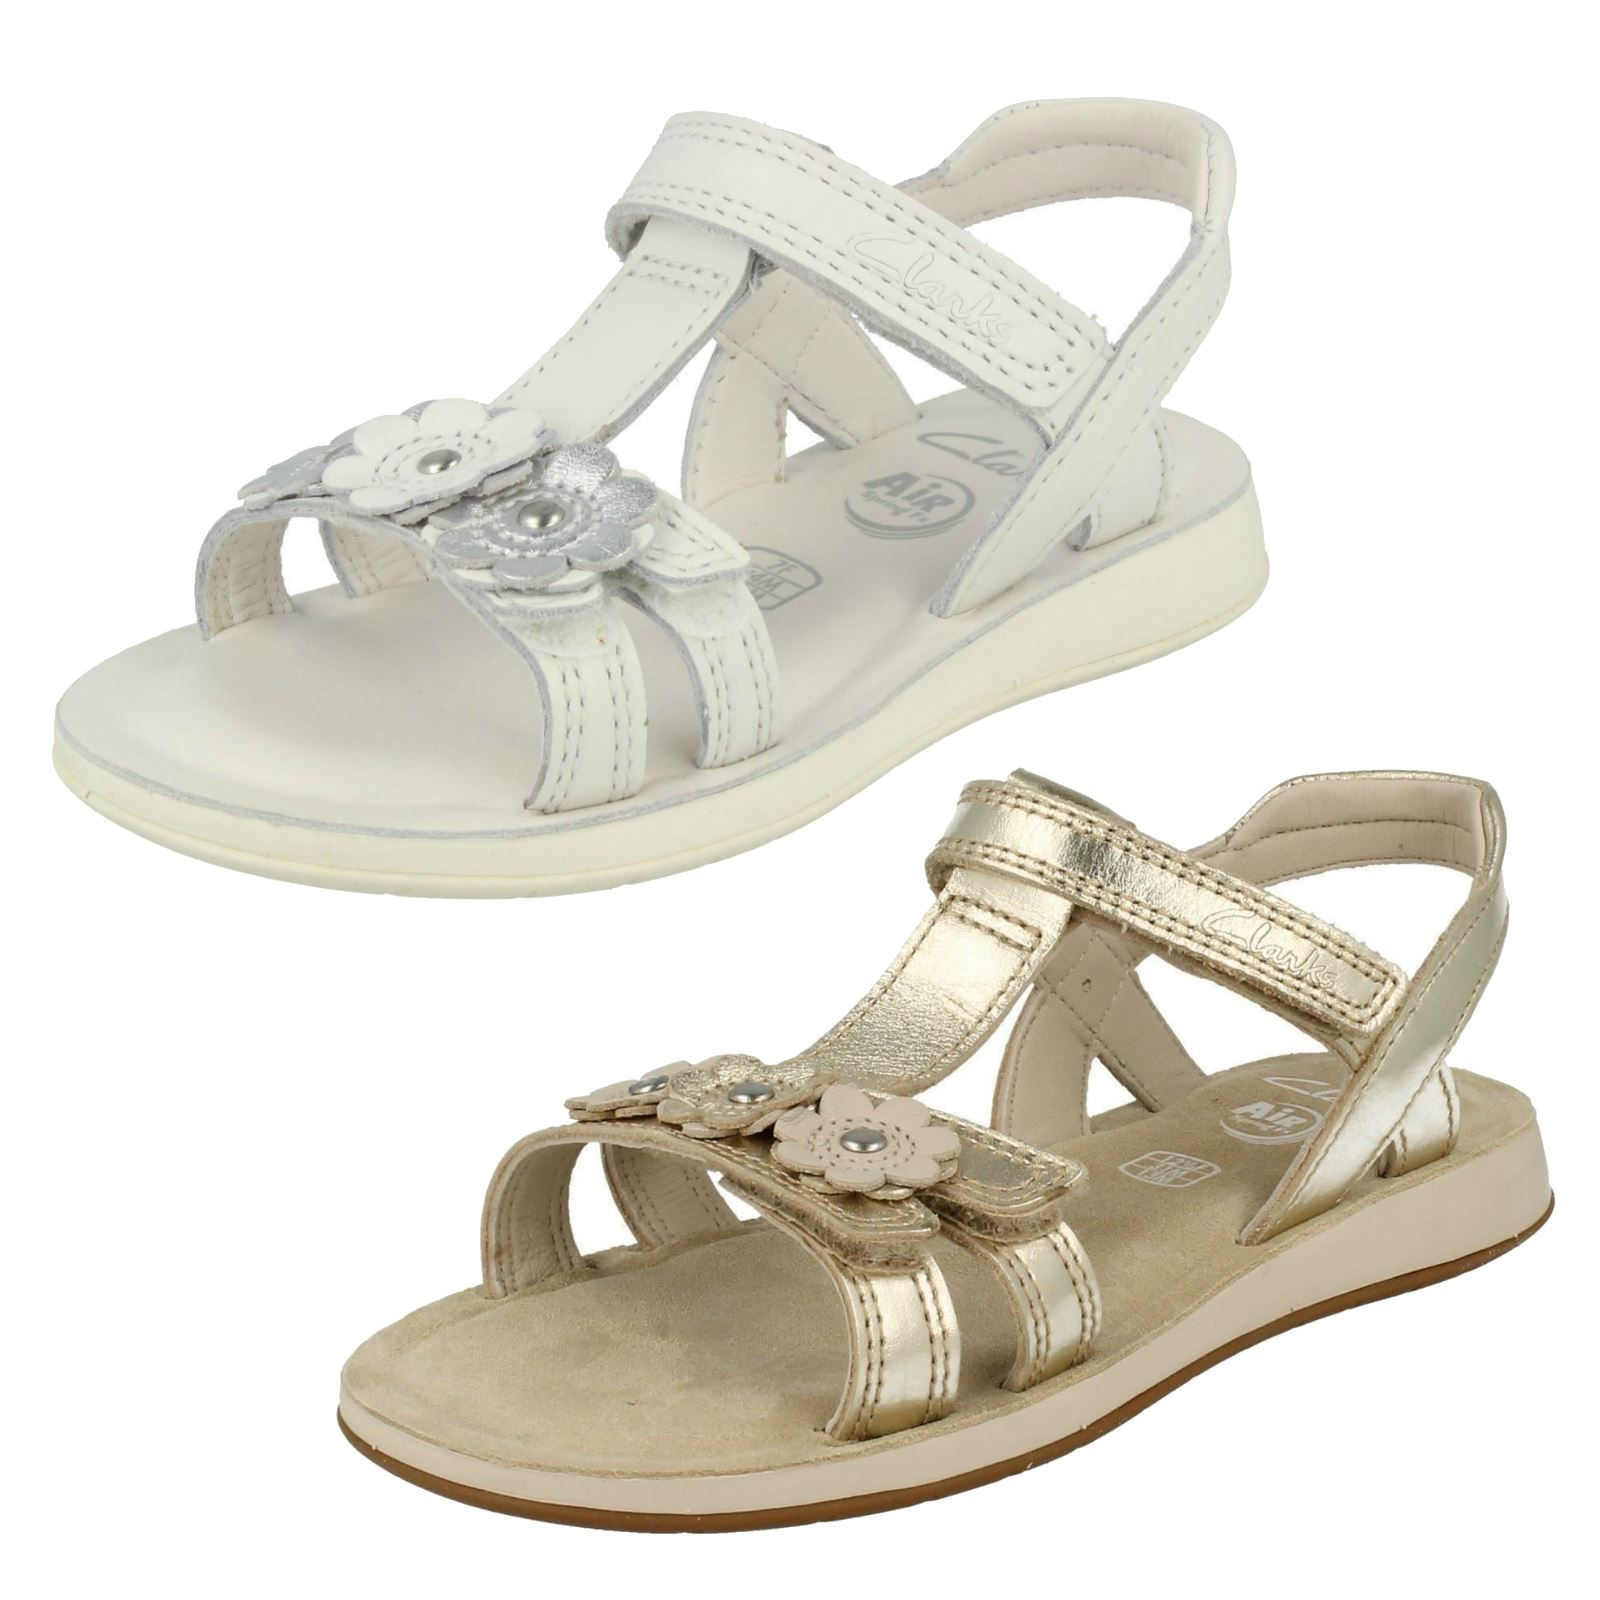 60c0d453dae Details about Girls Clarks Sea Sally Gladiator Style Sandals With Flower  Detail